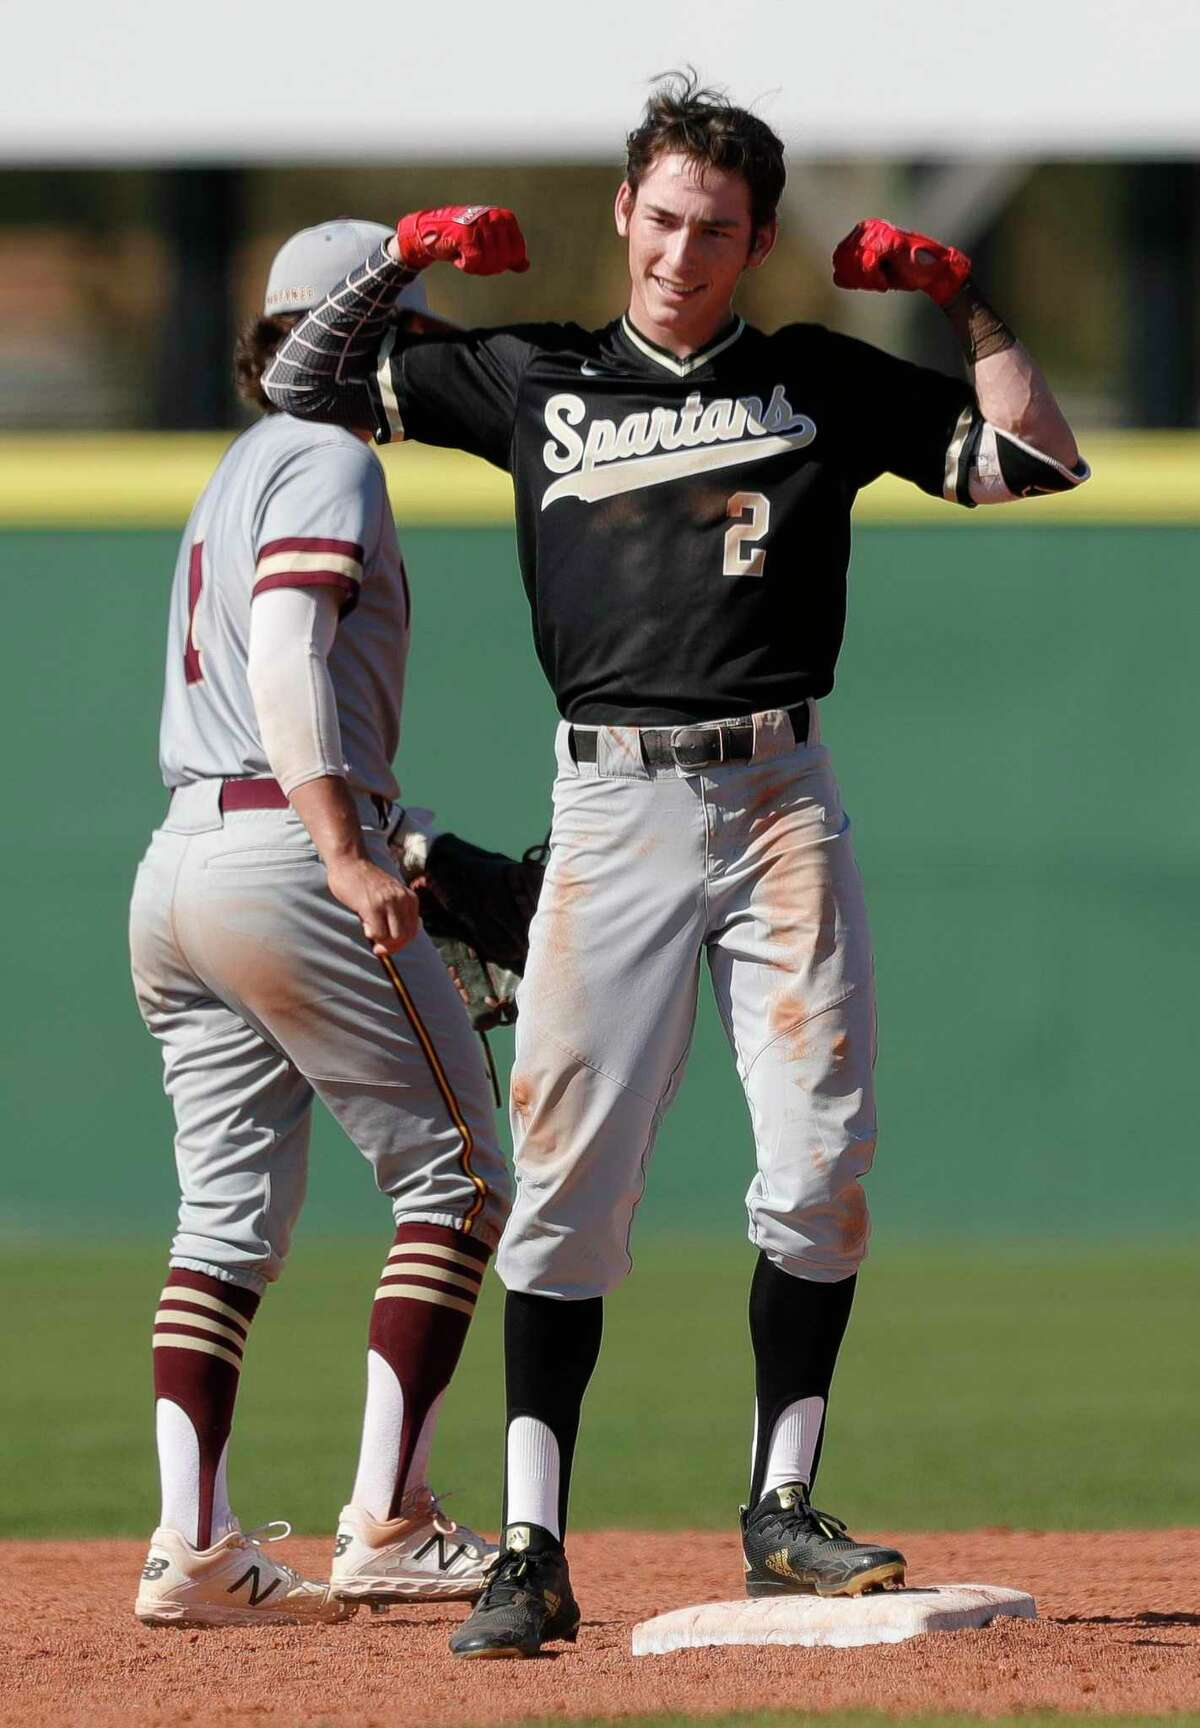 Conner Westenburg #2 of Porter reacts after hitting a 2-RBI double during the fifth inning of a high school baseball game at Porter High School, Friday, March 6, 2020, in Porter.